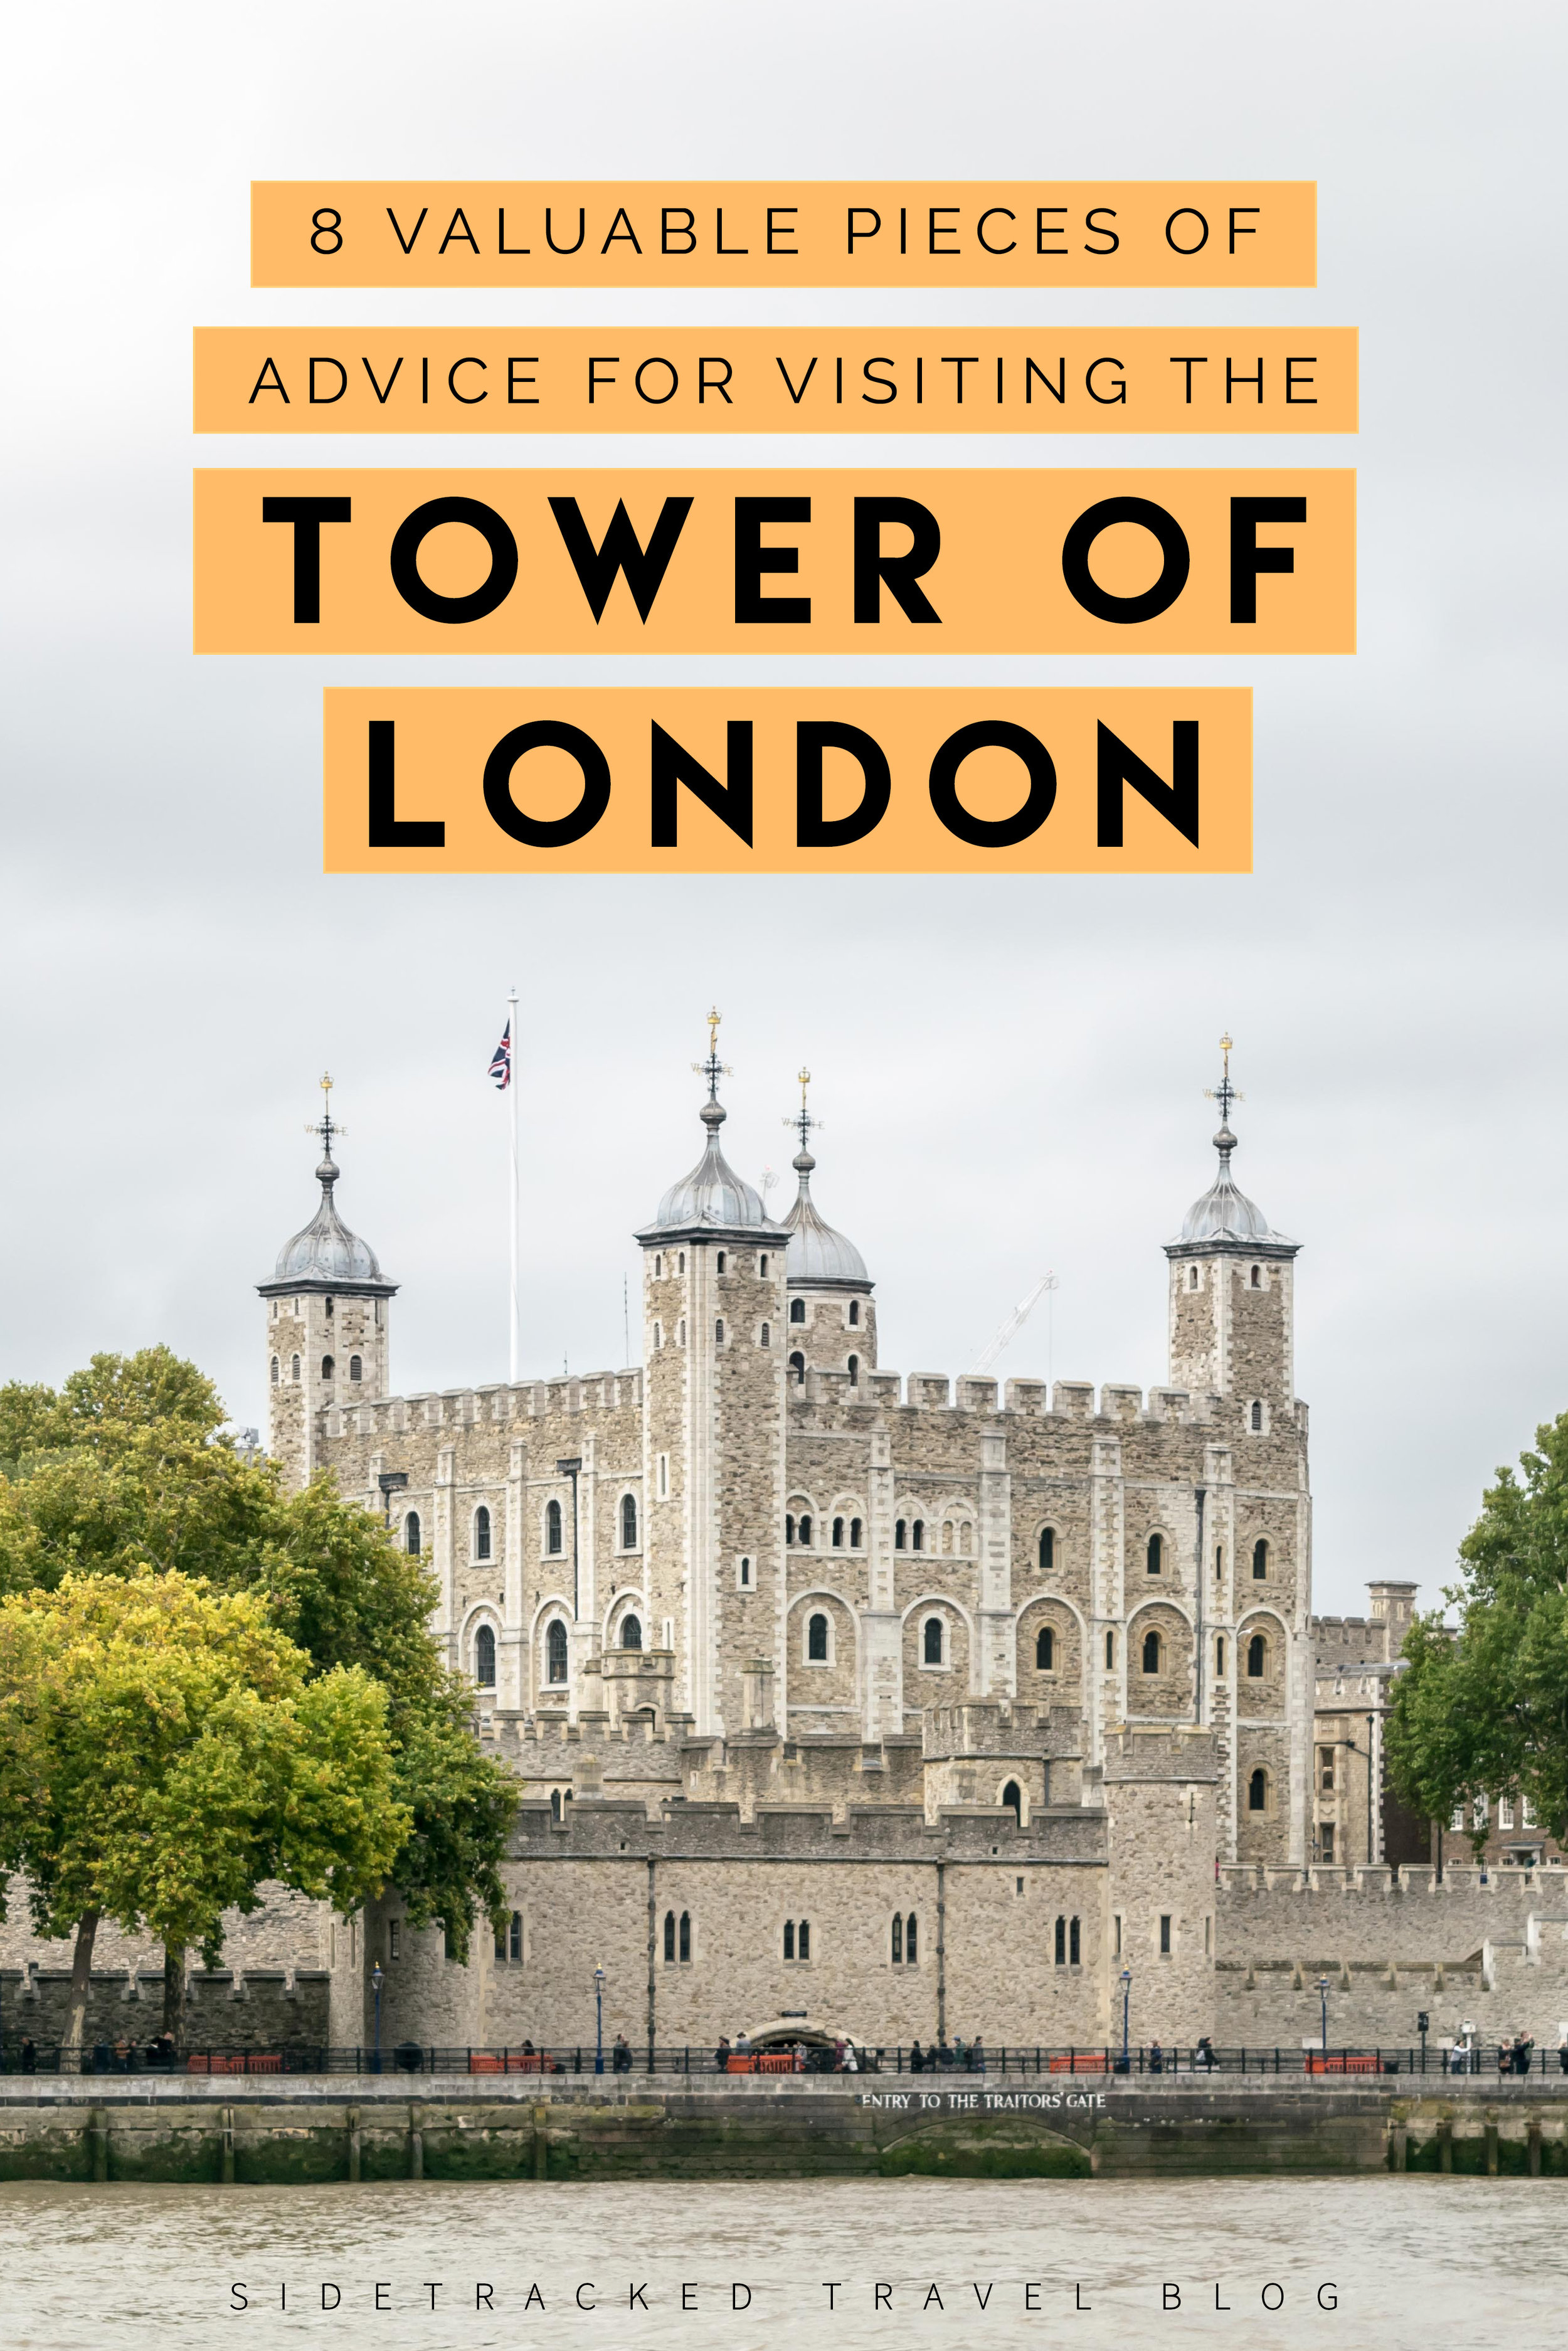 The Tower of London is one of the most visited places in the United Kingdom, and with such a far-ranging background, it's easy to understand why. If you're planning to go see this historical structure, here are 8 valuable pieces of advice to ensure you make the most of your visit!